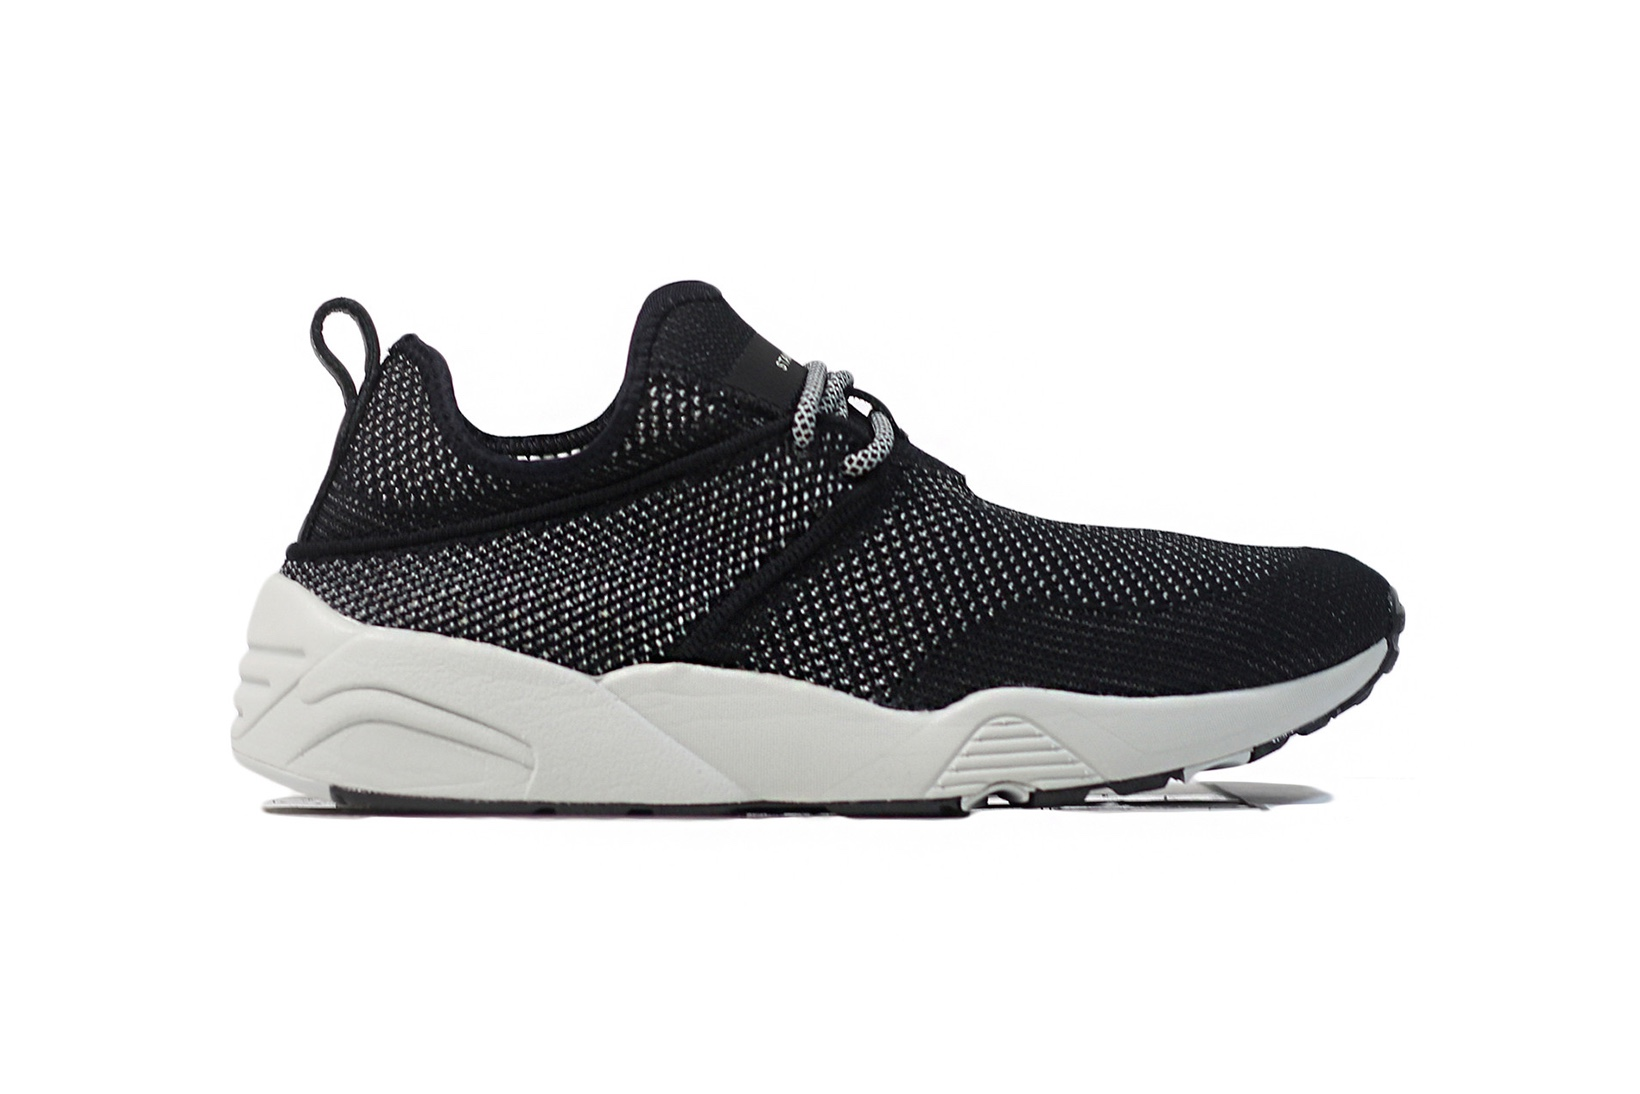 puma-trinomic-woven-stampd-steel-grey-black-02